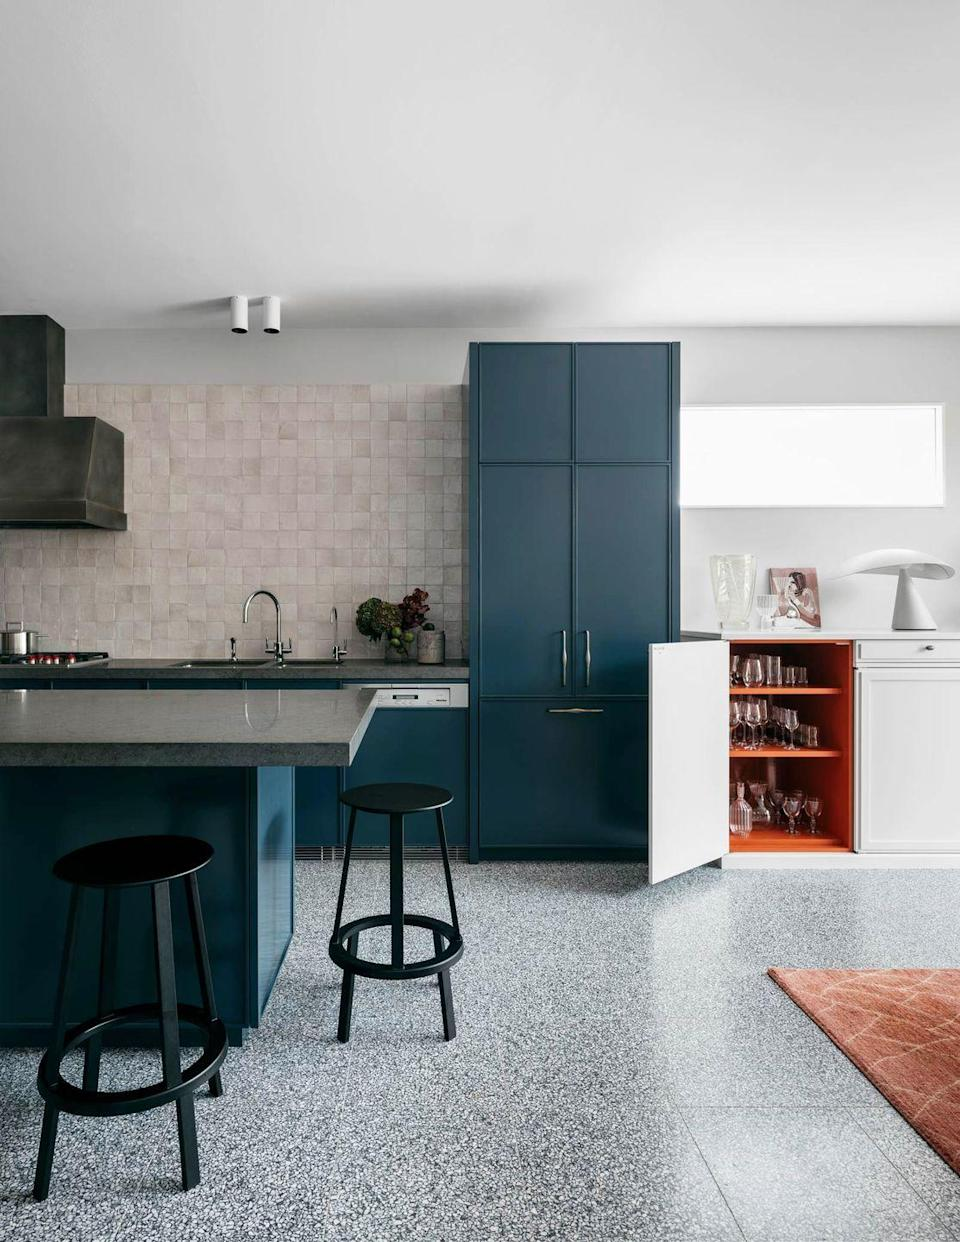 "<p>An inky, marine blue will ground a kitchen in an open space and feel more formal than a light color without being as moody and as dark as black. We also love the idea of painting the interior cabinets a color that corresponds with an accent piece in the room, like this orange cabinet designed by <a href=""https://arentpyke.com/"" rel=""nofollow noopener"" target=""_blank"" data-ylk=""slk:Arent & Pyke"" class=""link rapid-noclick-resp"">Arent & Pyke</a> to match the carpet.</p>"